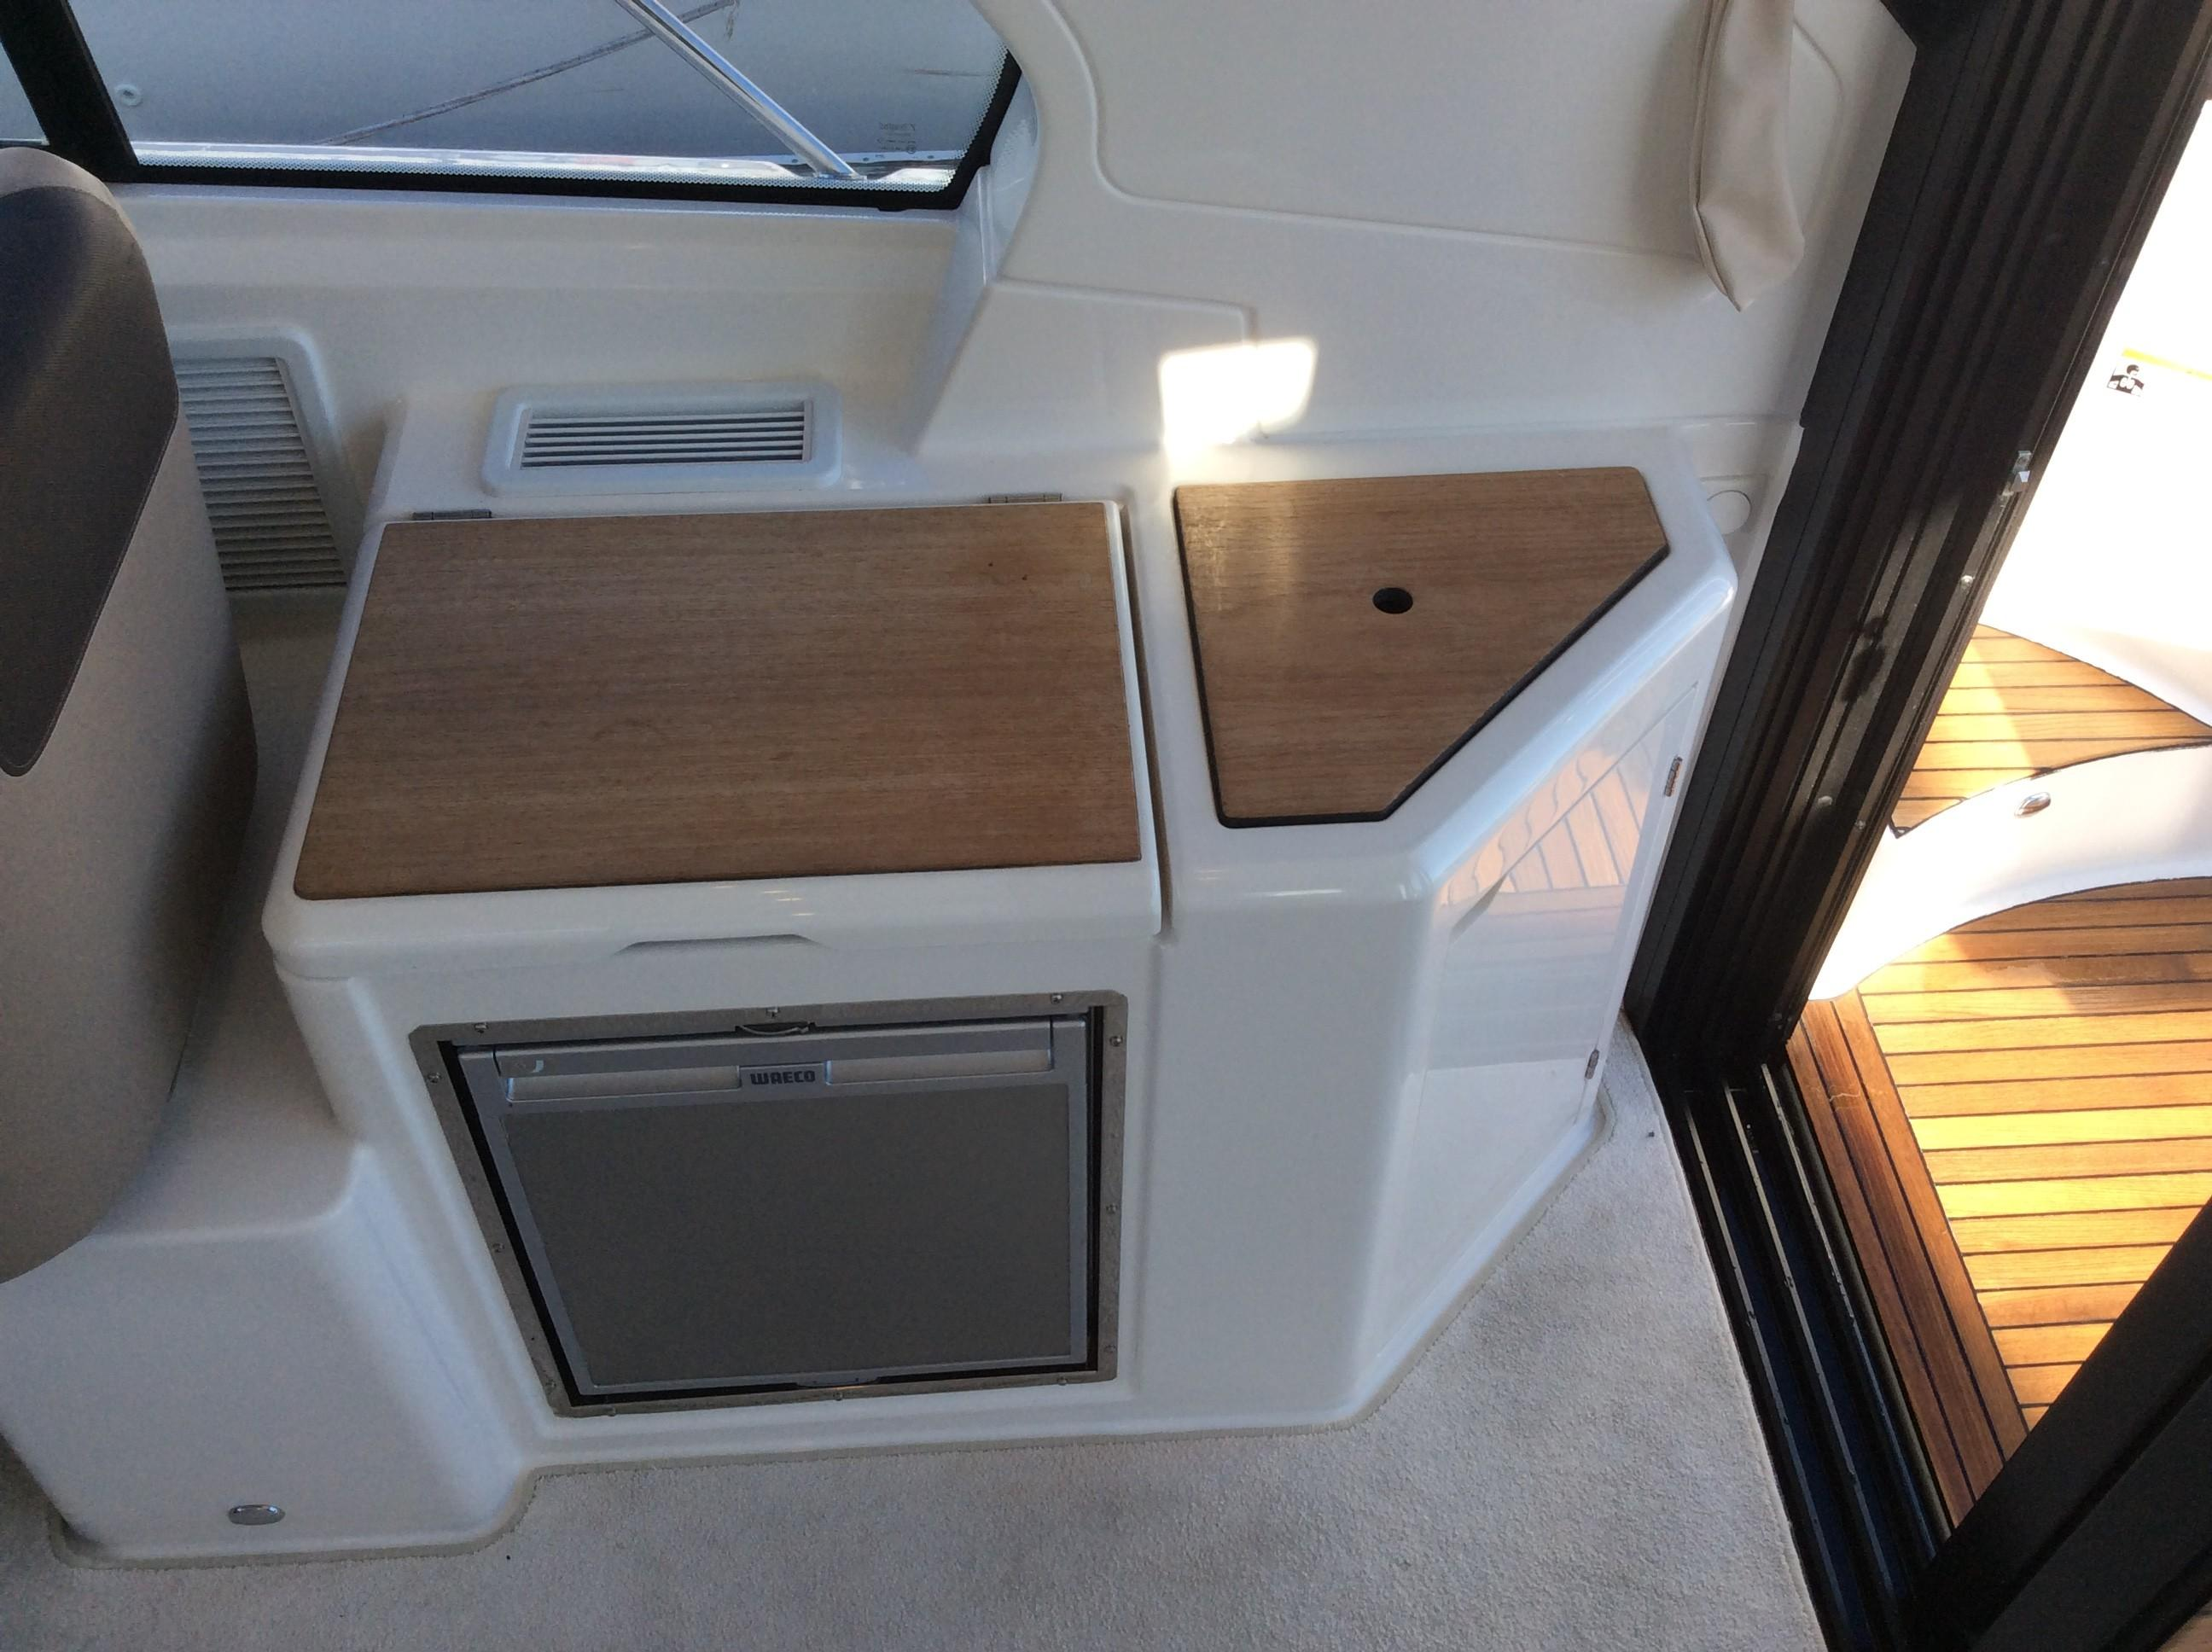 Cockpit Refrigerator, Grill and Sink - Closed